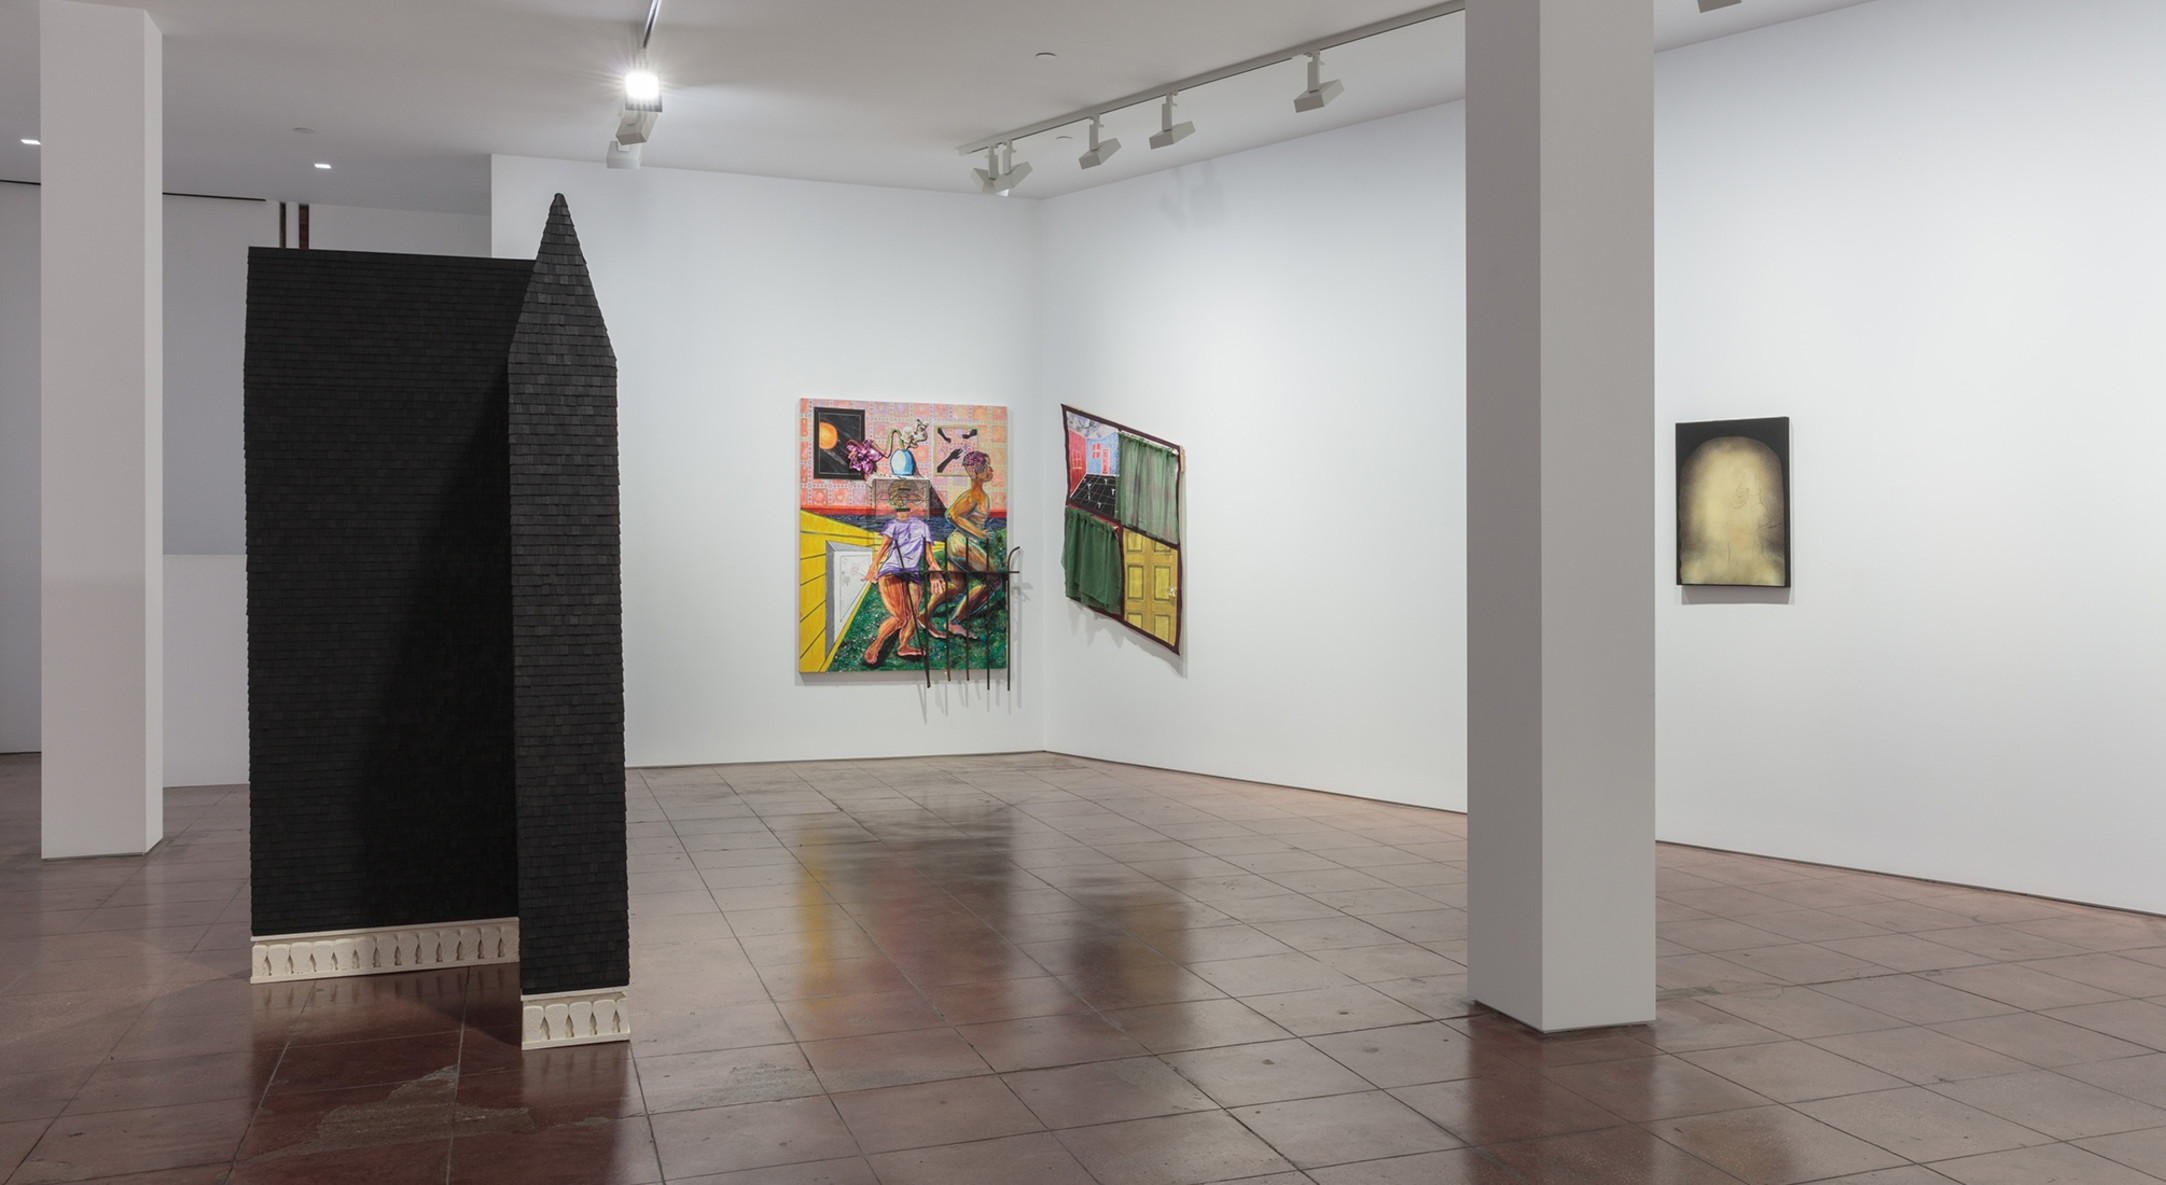 Installation view of Vernacular Interior, Beverly Buchanan, Genevieve Gaignard, Trenton Doyle Hancock, Esteban Jefferson, Devin N Morris, Tajh Rust, Curtis Talwst Santiago, Cal Siegel, and Becky Suss at Hales New York, 2019